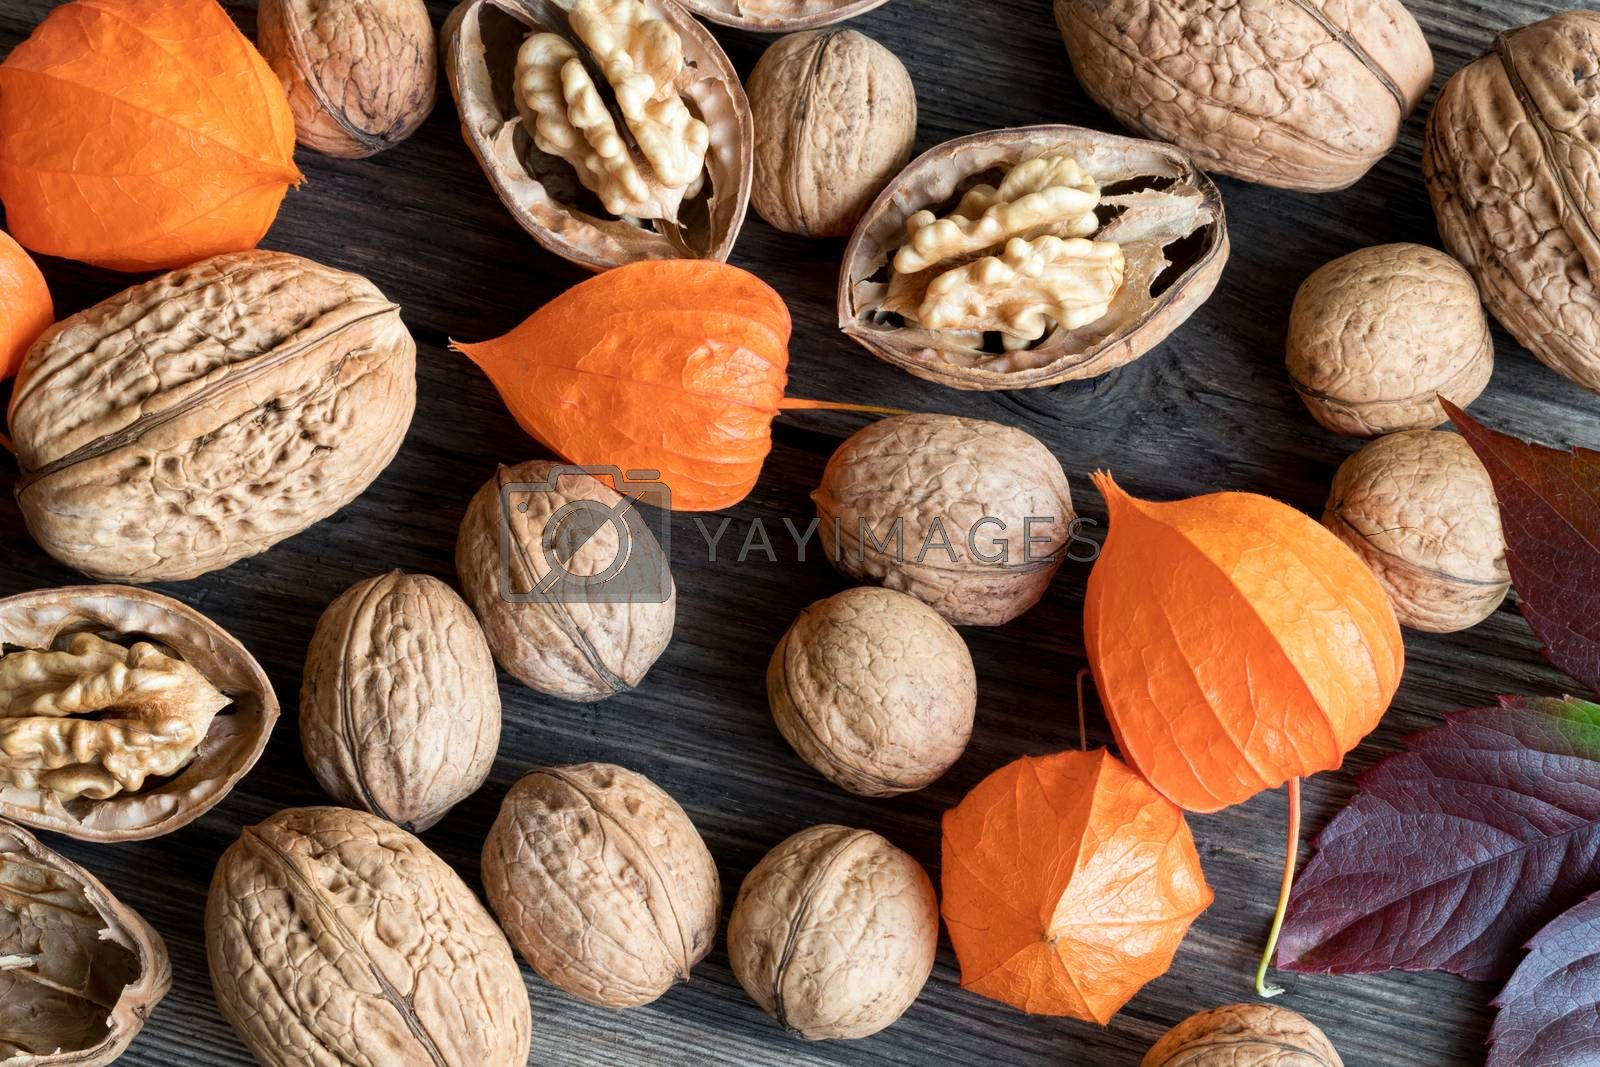 Whole and broken walnuts, Physalis alkekengi (Chinese lantern) and autumn leaves on a wooden background, top view